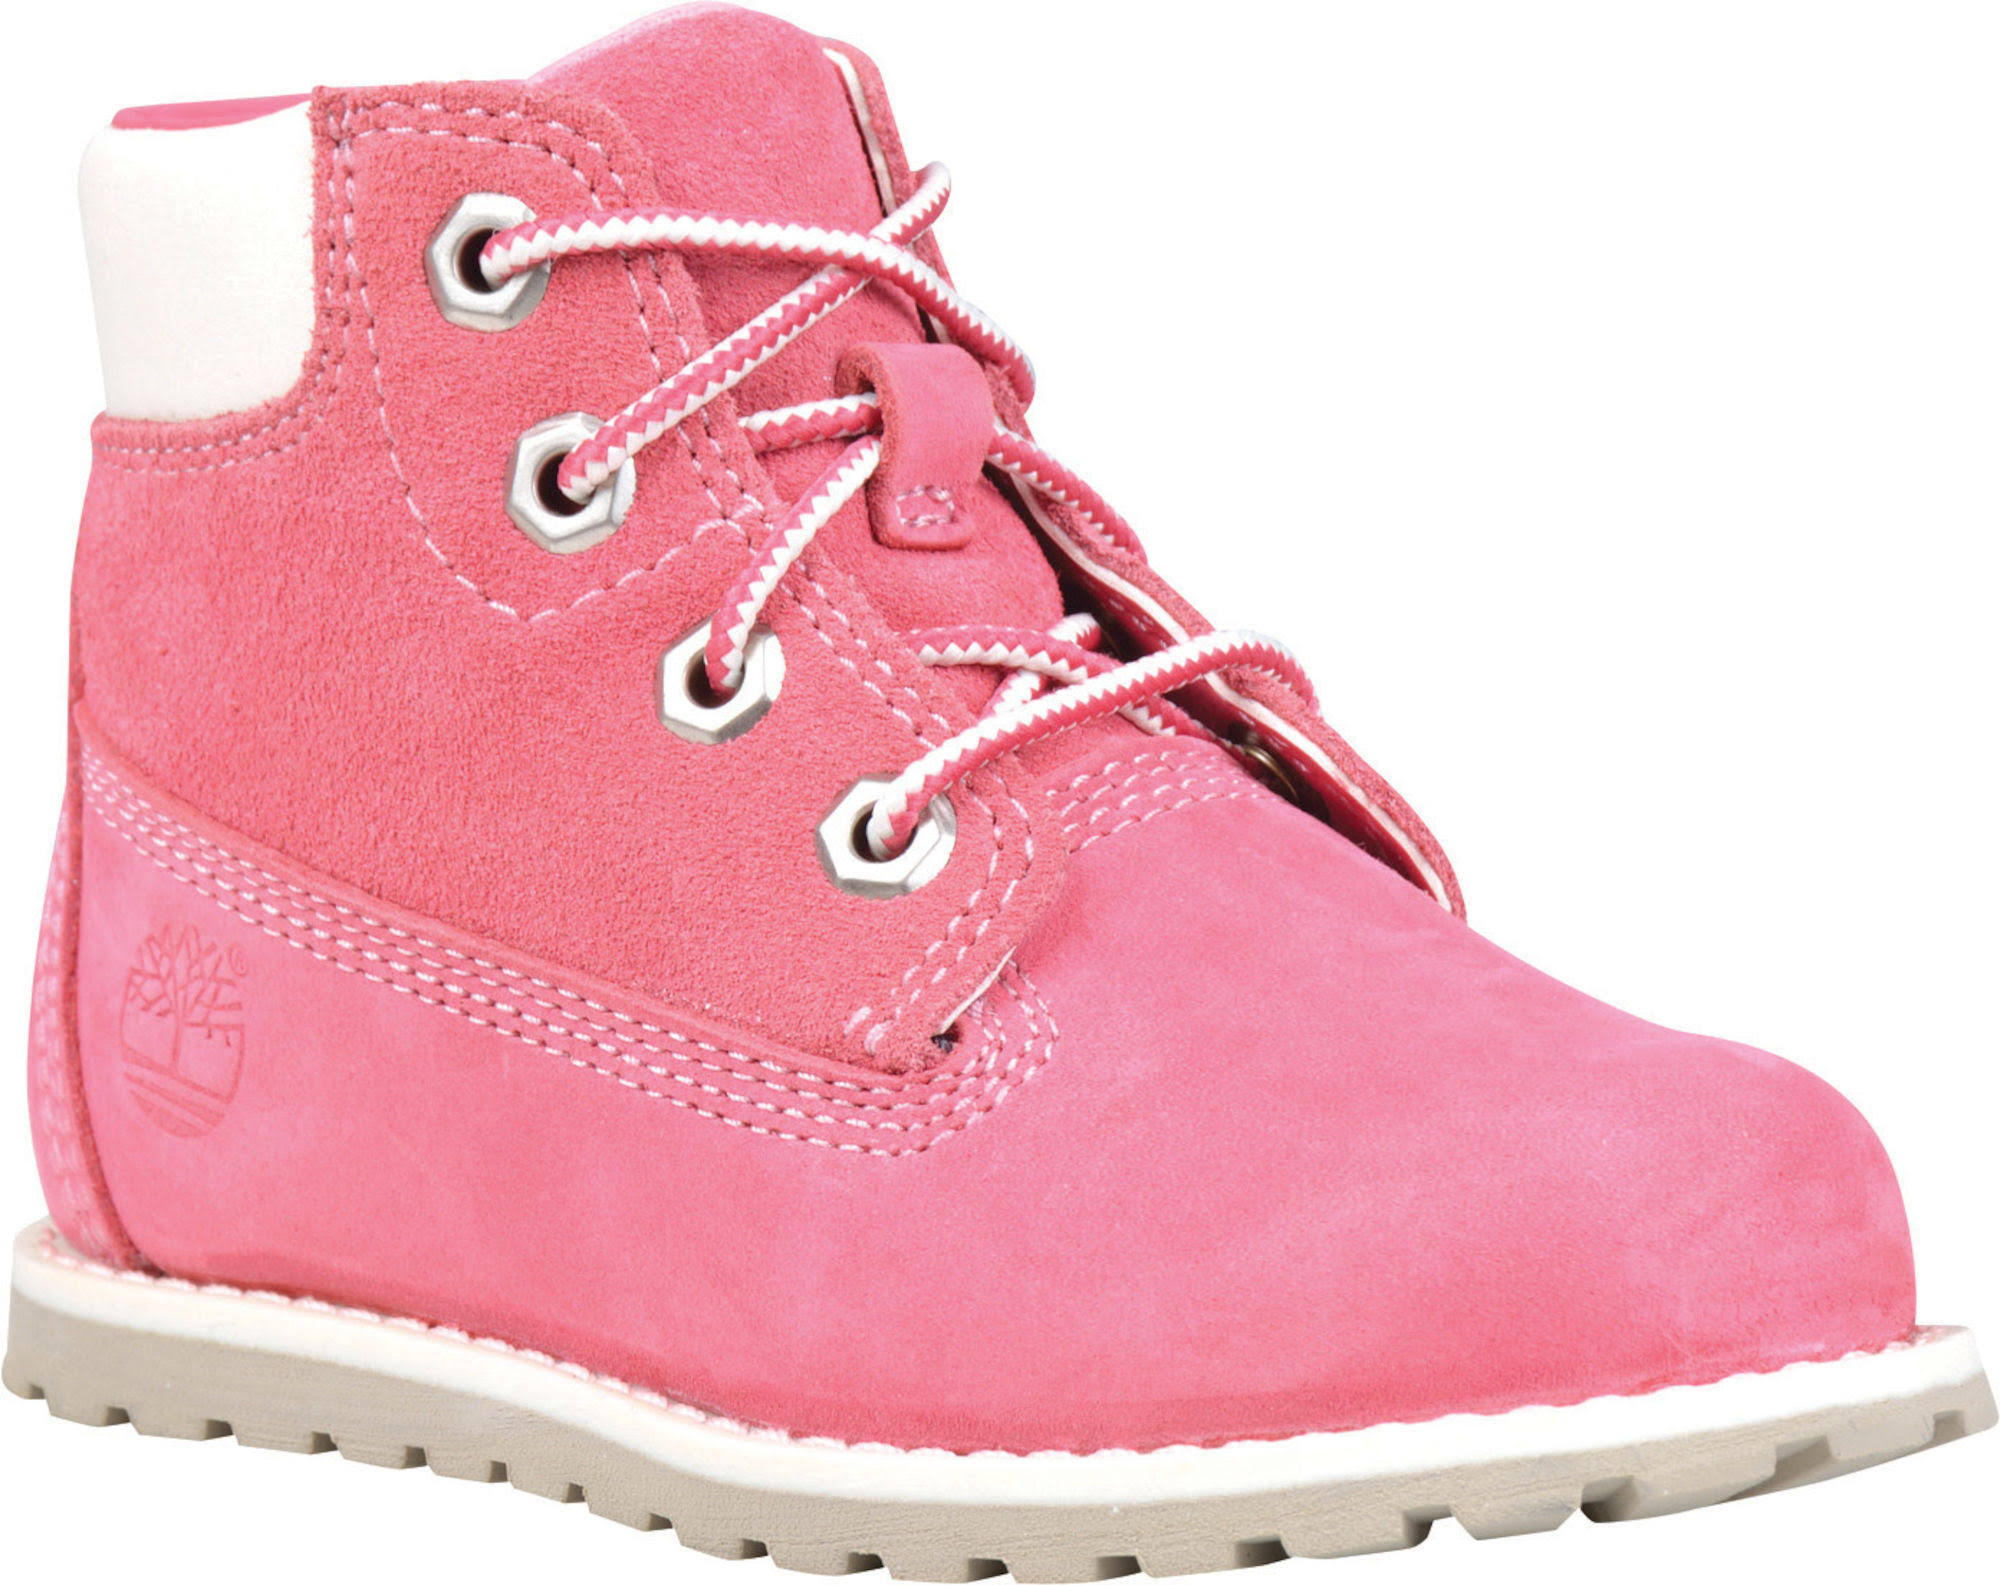 Toddlers 25 6 Side Eu Pine With Timberland Zip Pokey Boot Pink 2 1 In 84qxwvE